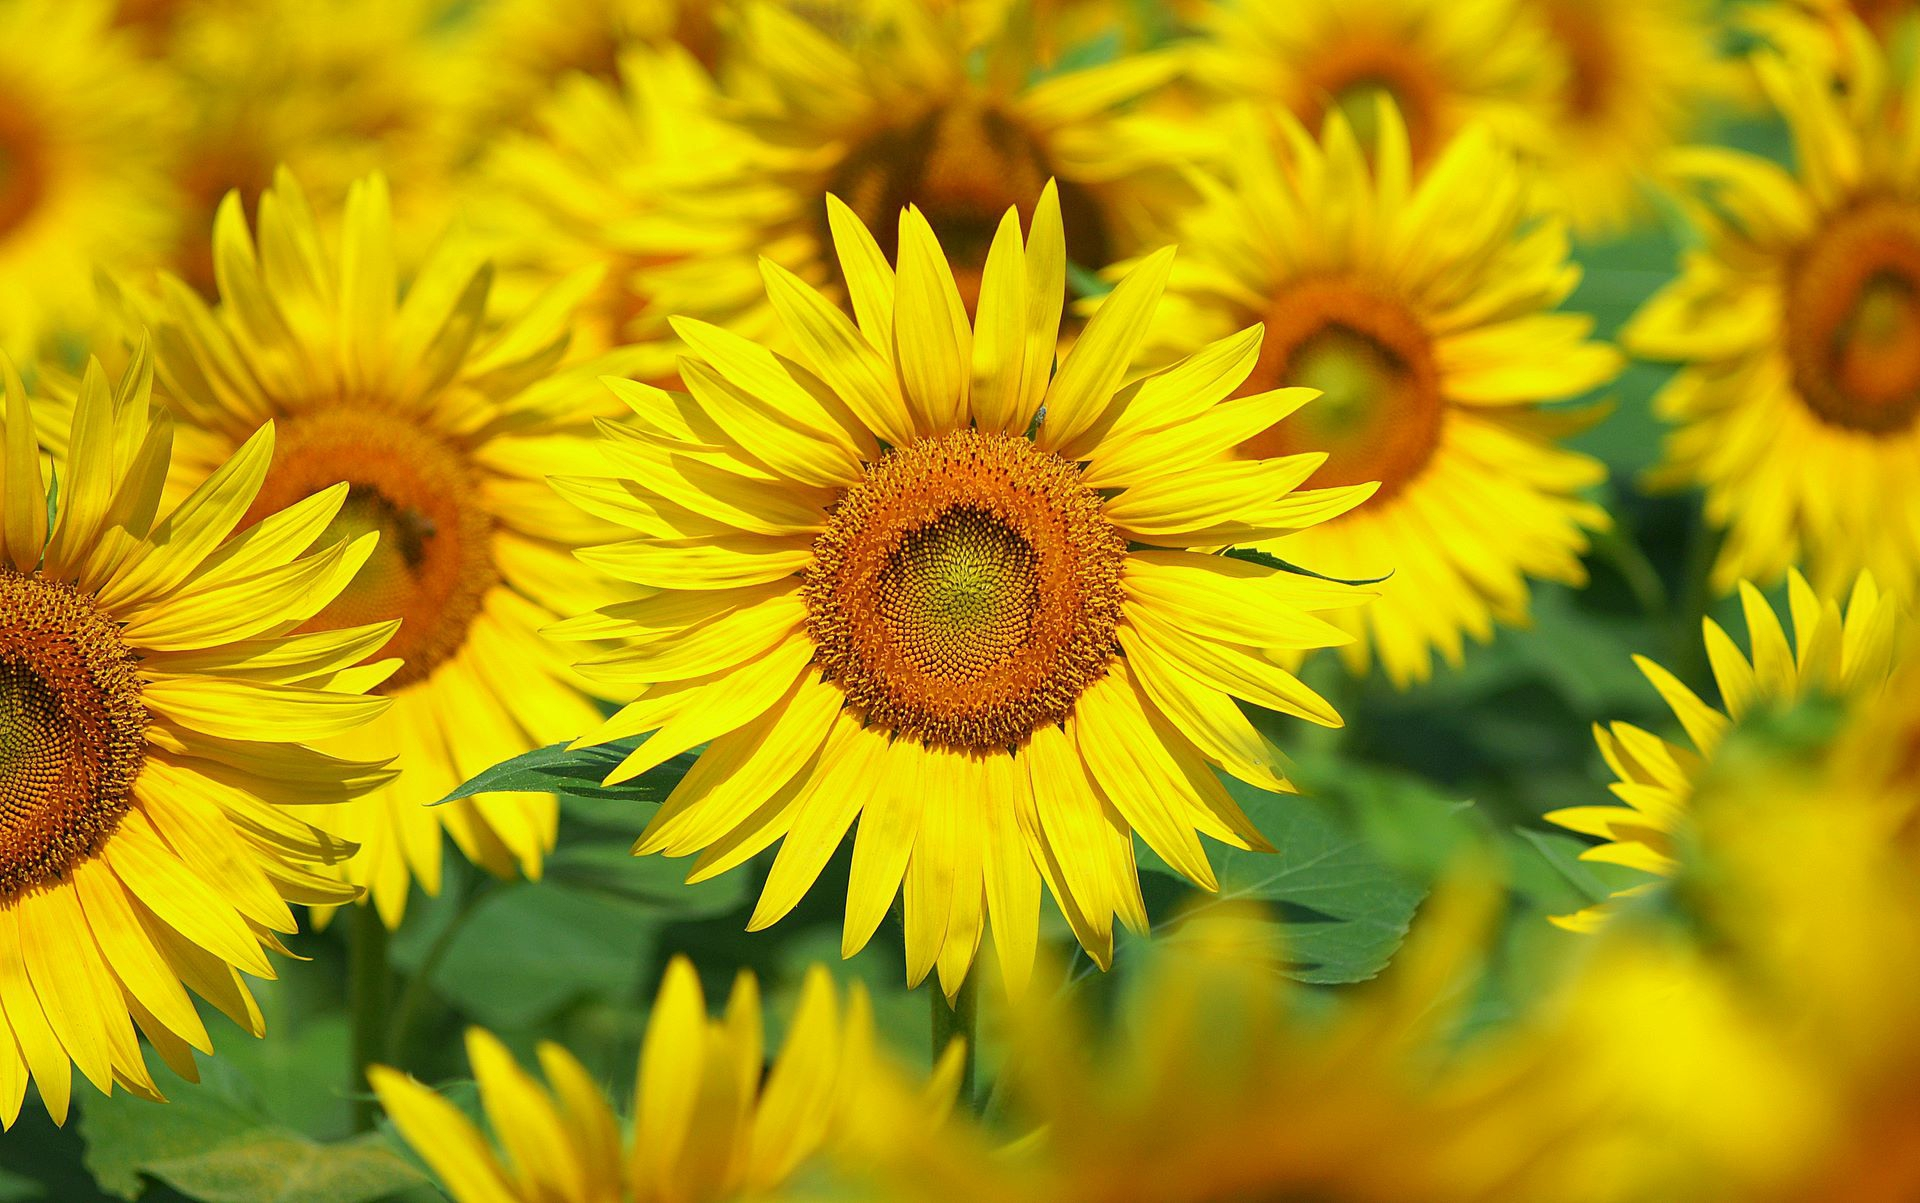 Sunflower Images